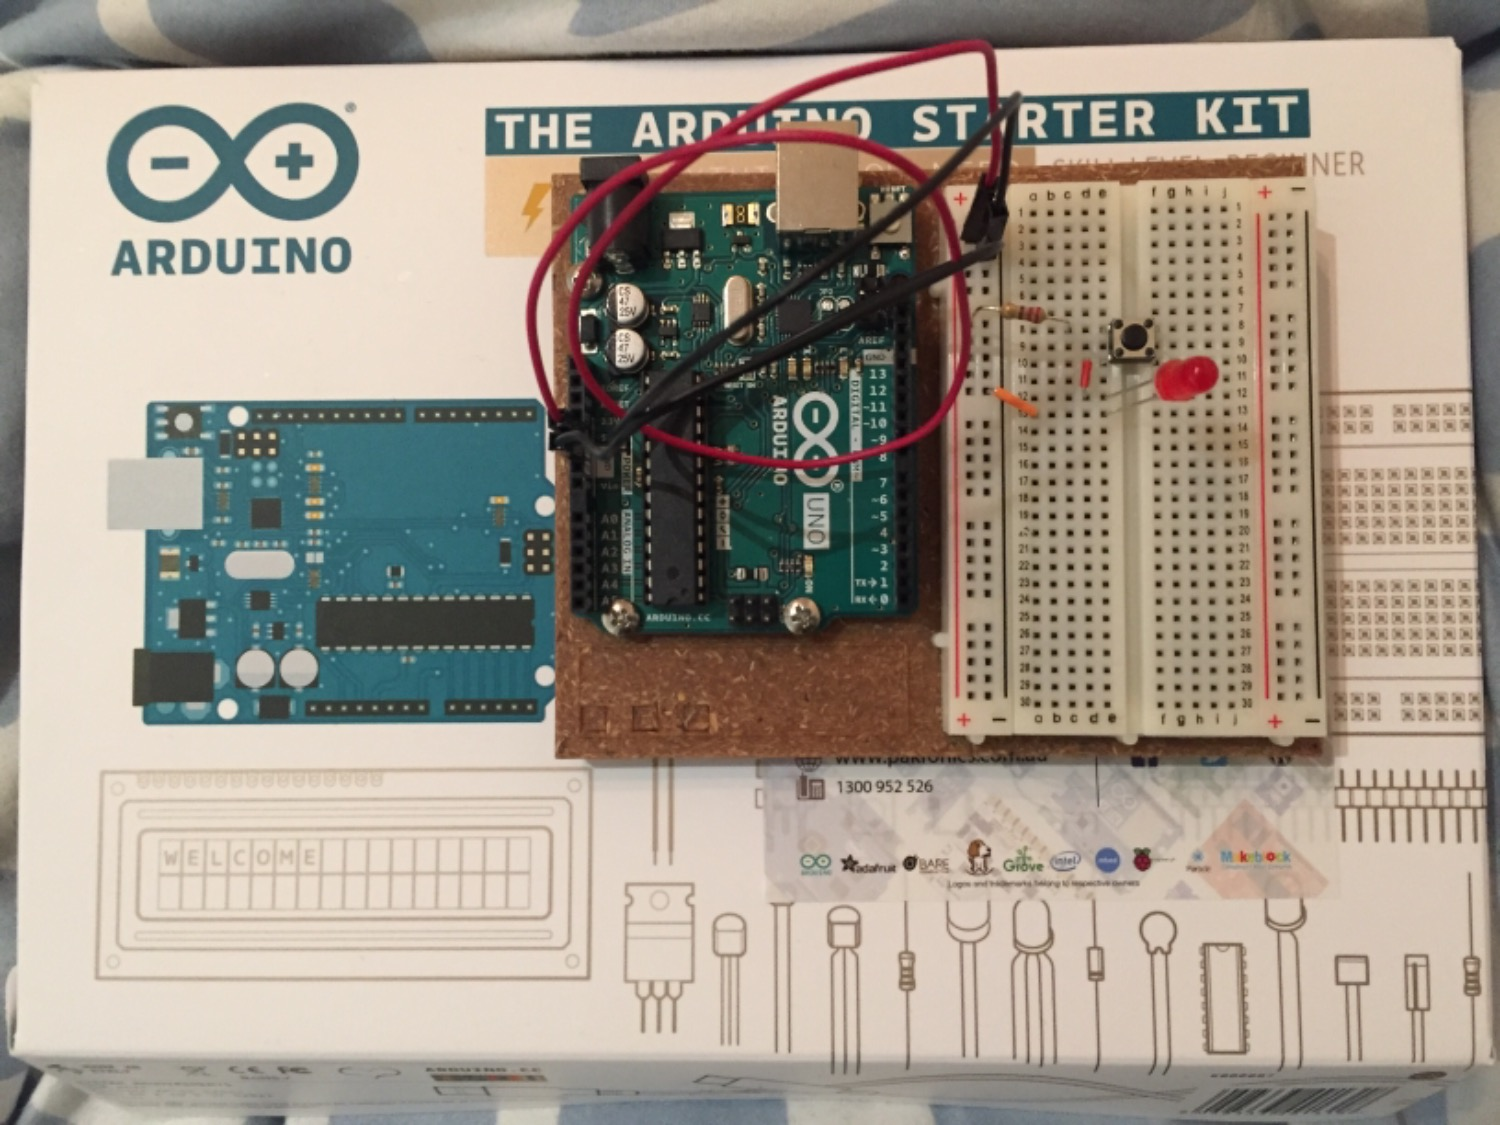 Buy Arduino Starter Kit Official From Ard K000007 In L293d Secret Motor Driver Electronic Thuy C Verified Customer Review Of